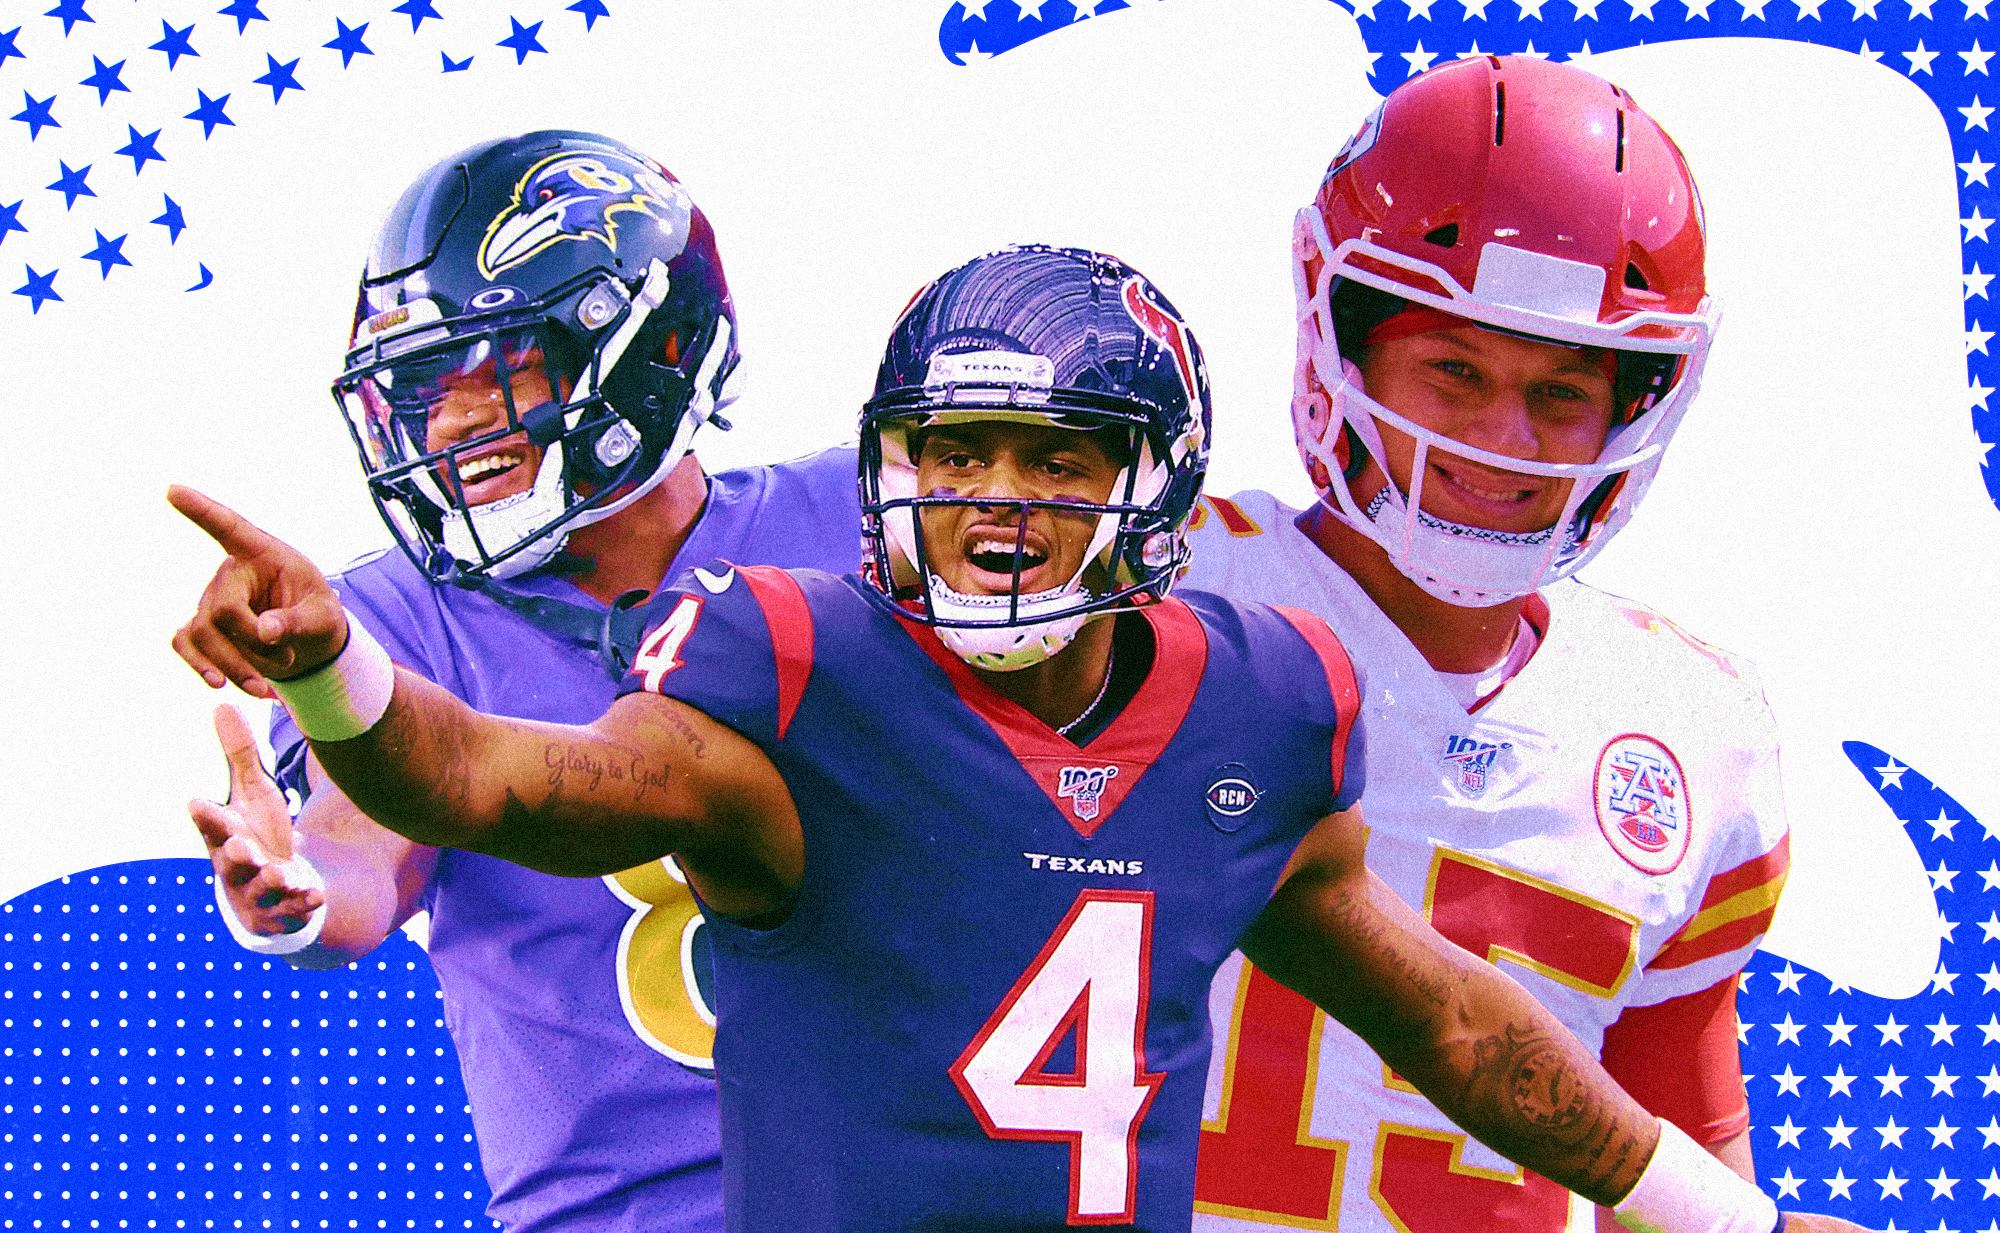 An art collage of NFL QBs Lamar Jackson (Ravens), Deshaun Watson (Texans), Patrick Mahomes (Chiefs), superimposed on a blue and white background with stars